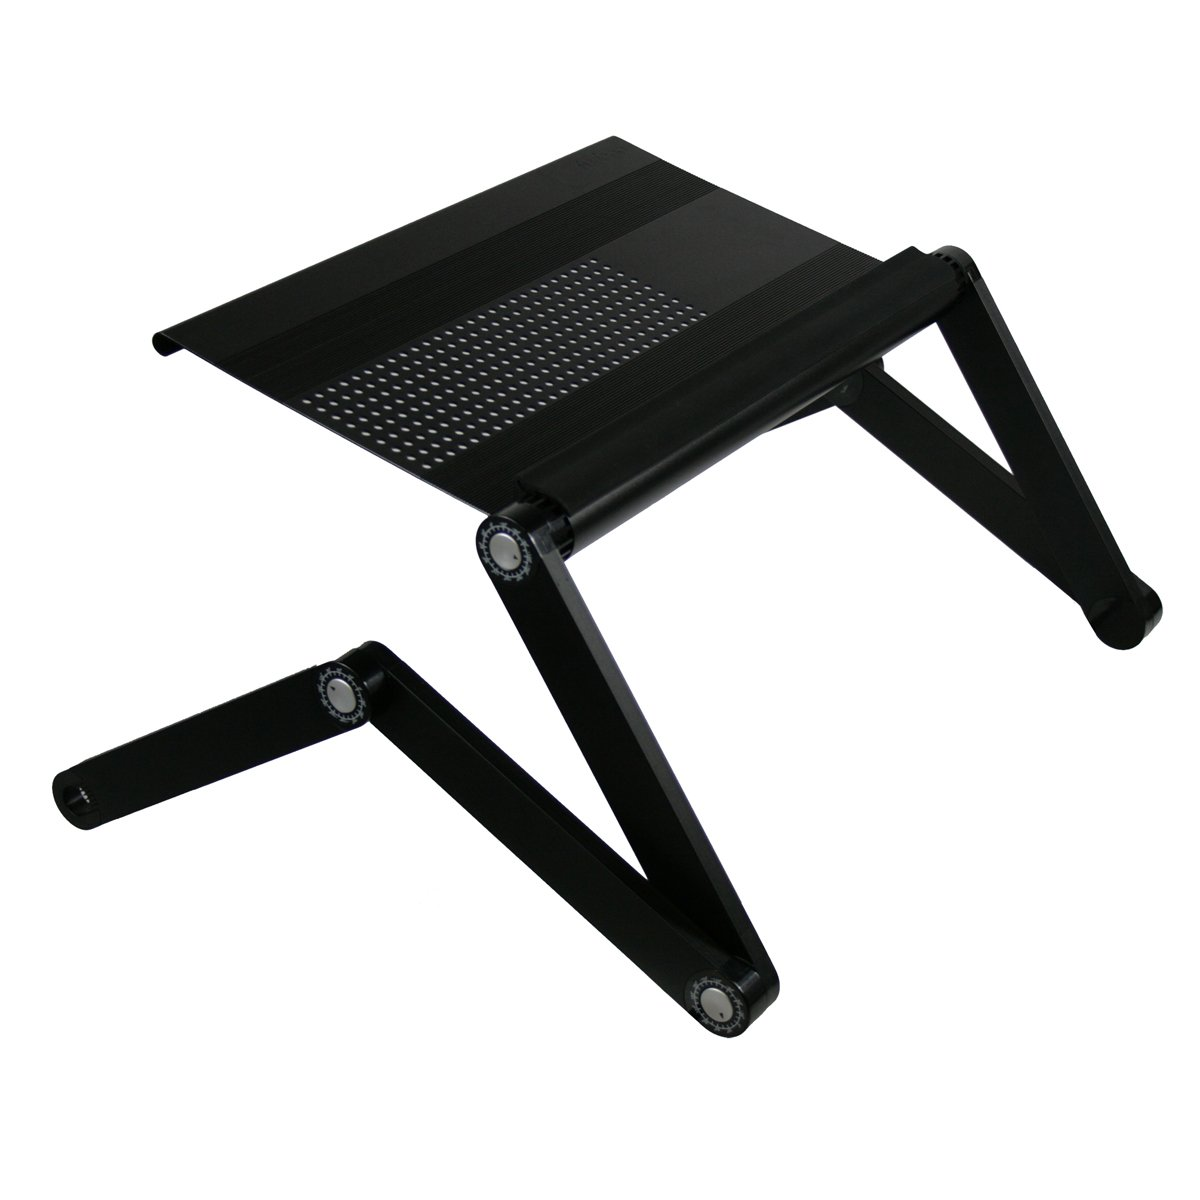 Furinno Adjustable Vented Laptop Table Laptop Computer Desk $39.99